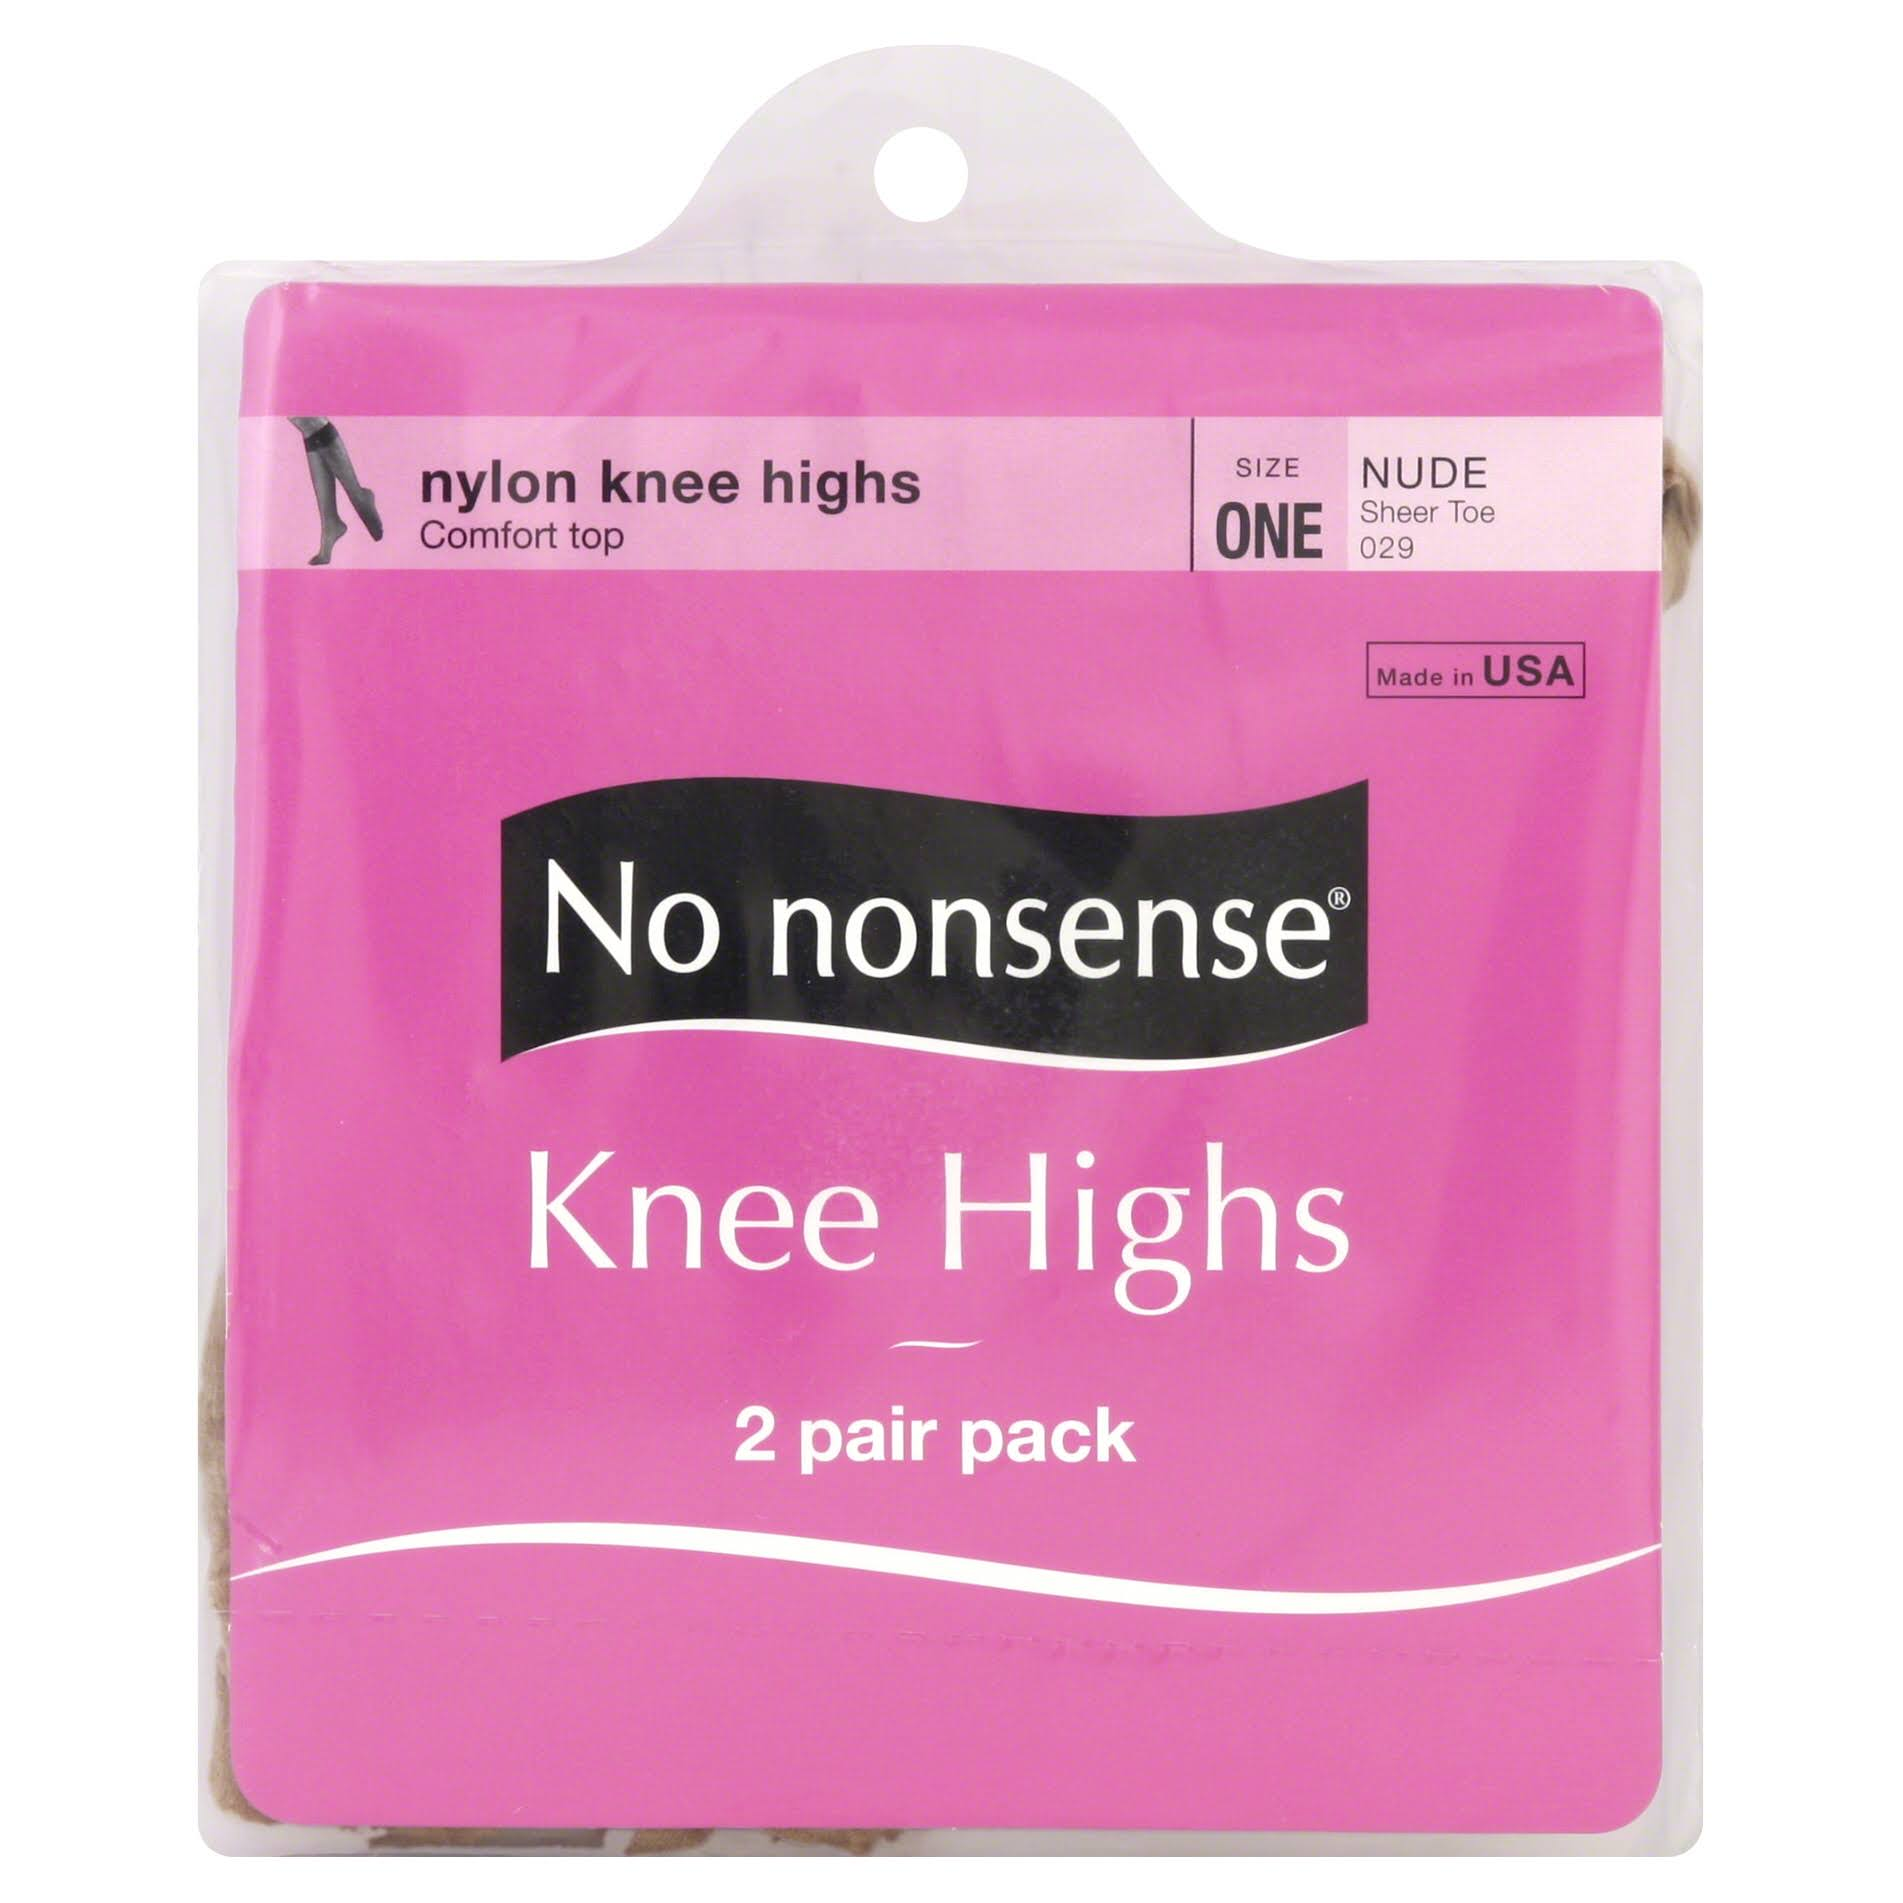 No Nonsense Knee Highs Sheer Toe - Nude, 2pair, Size 1